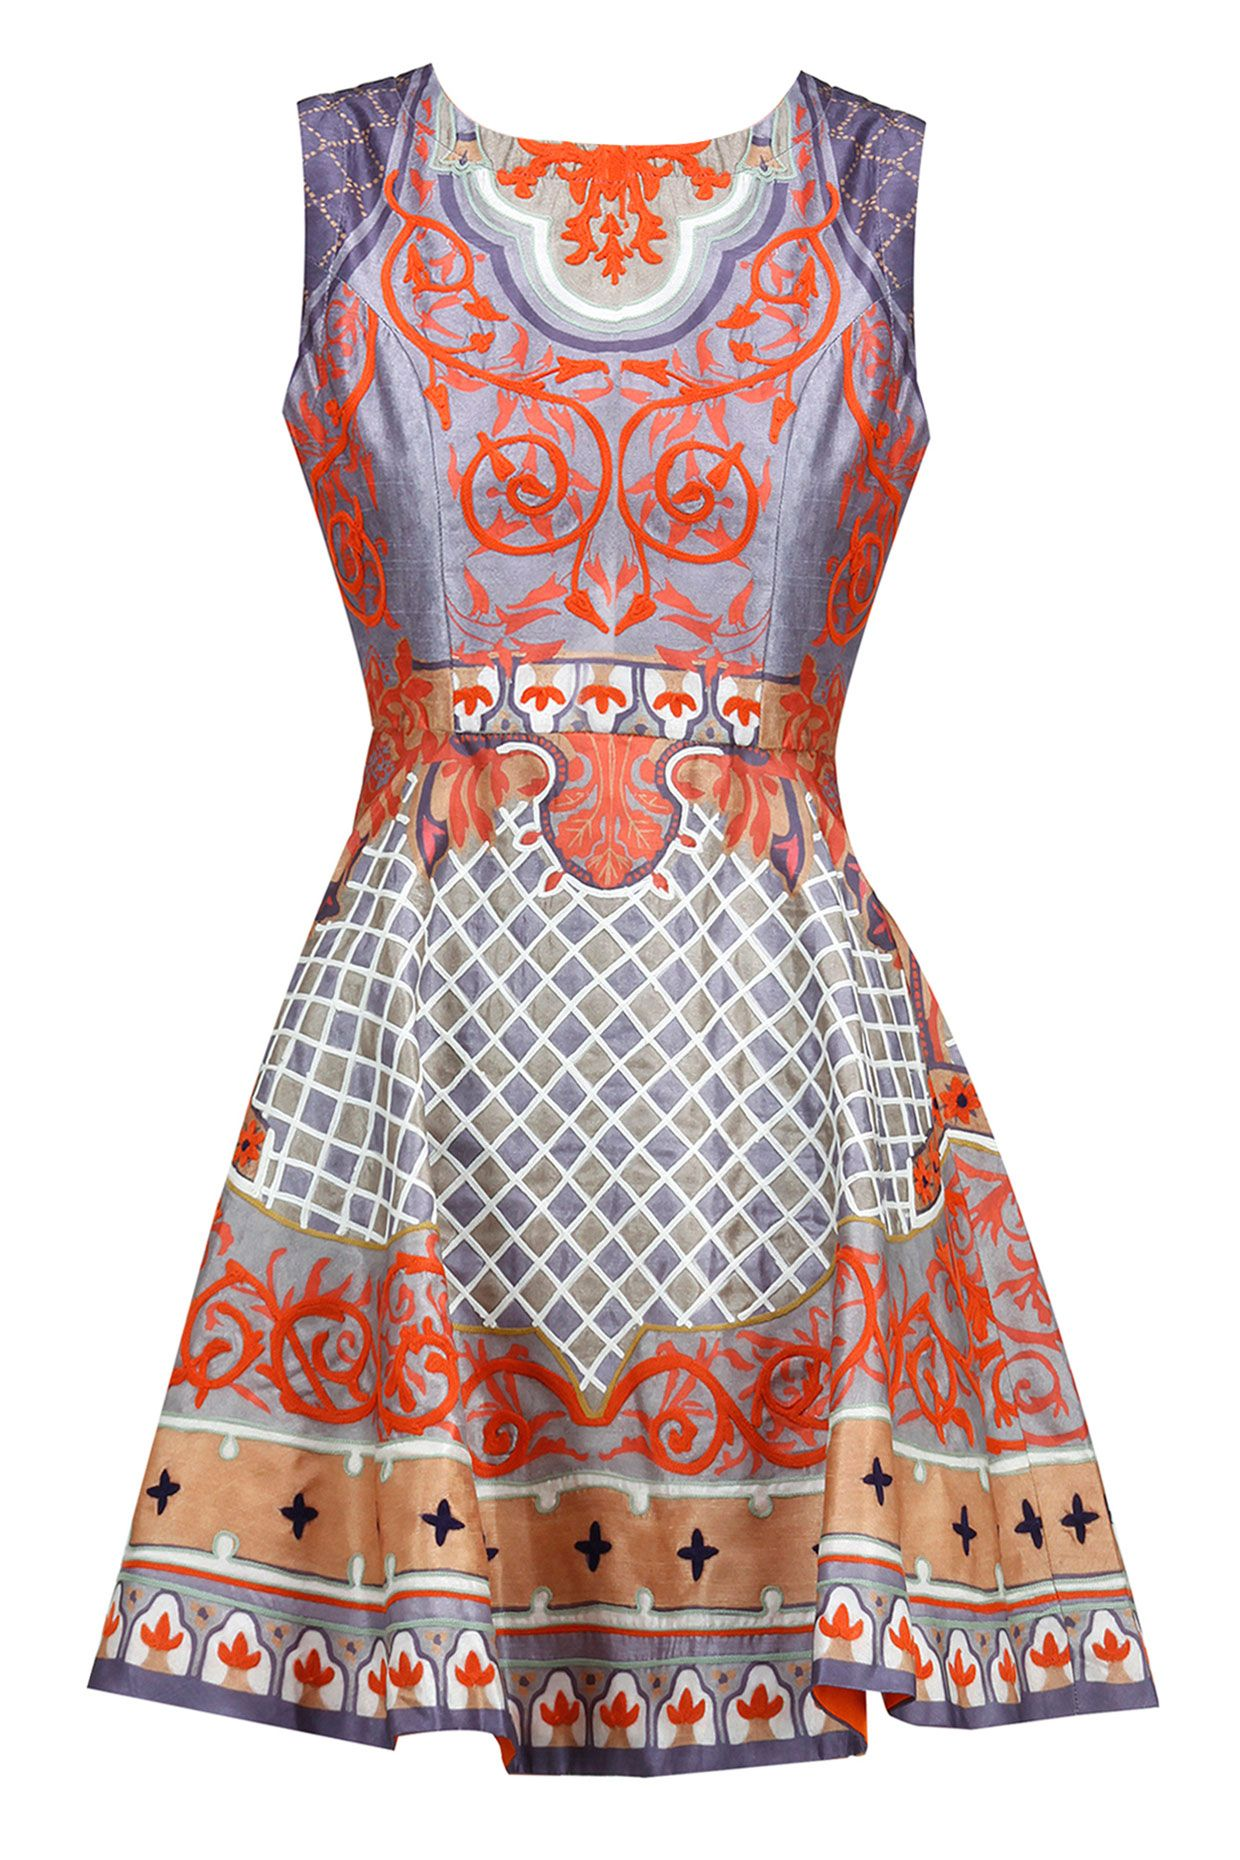 Multicolour printed and embroidered dress available only at perniaus